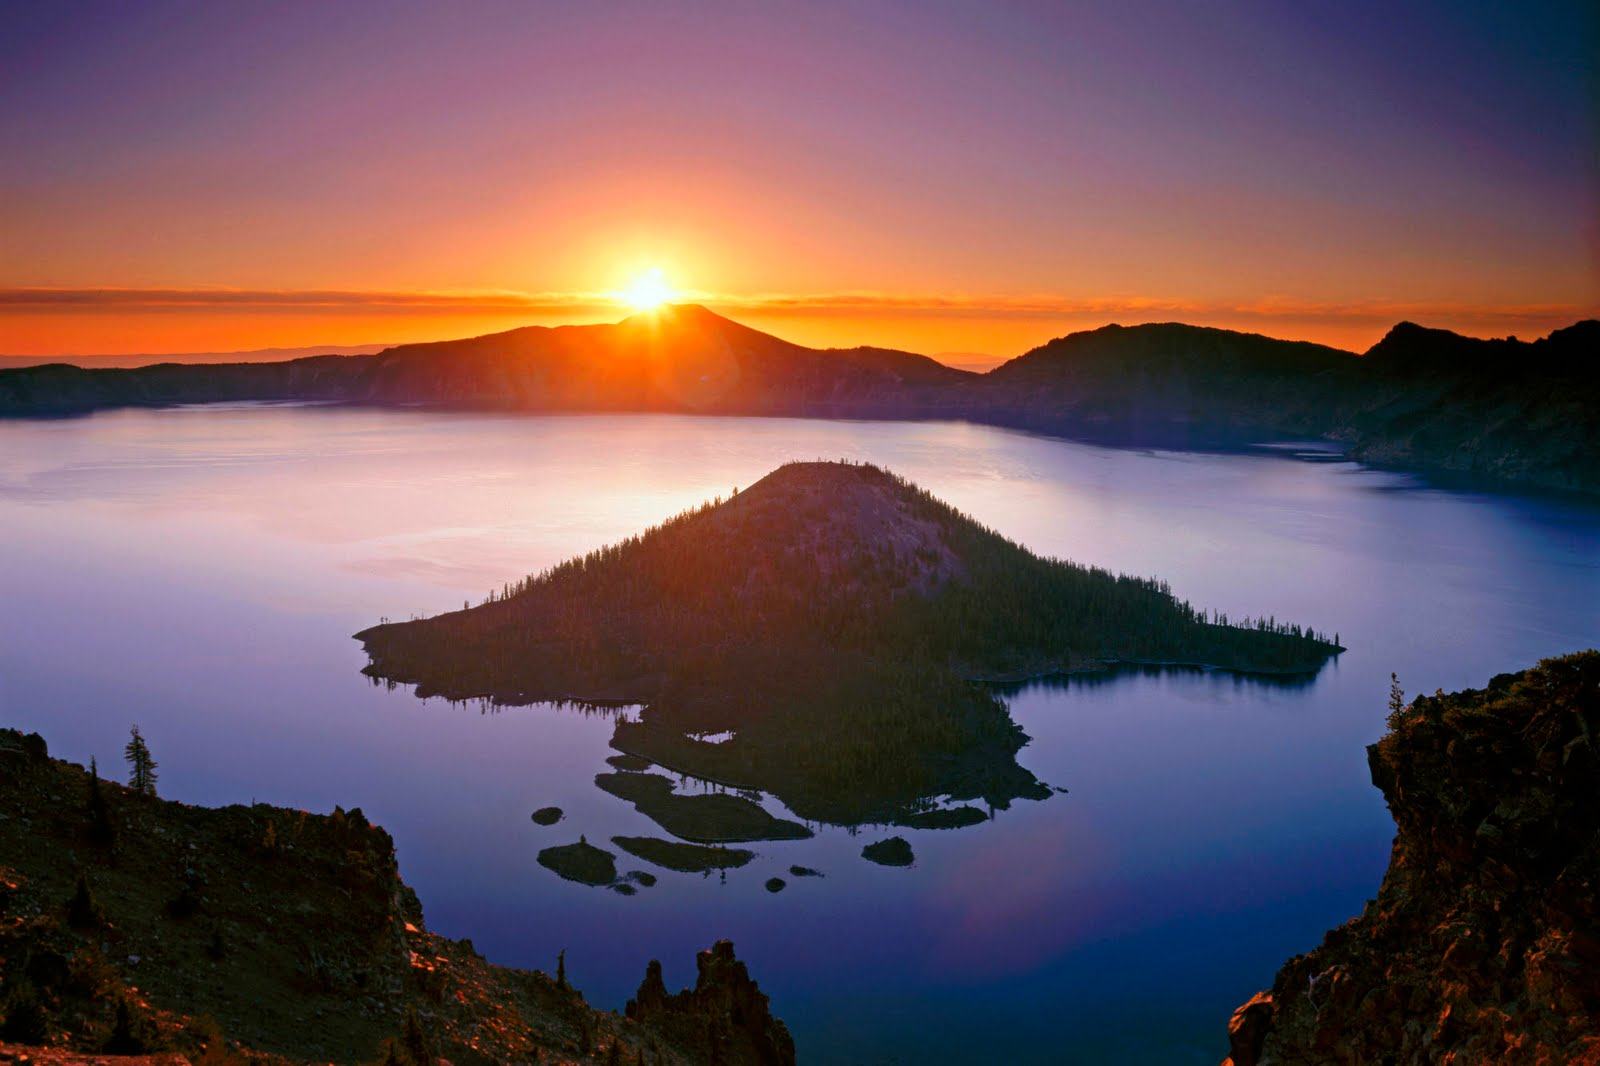 Sunrise in Mountain Nature Wallpaper